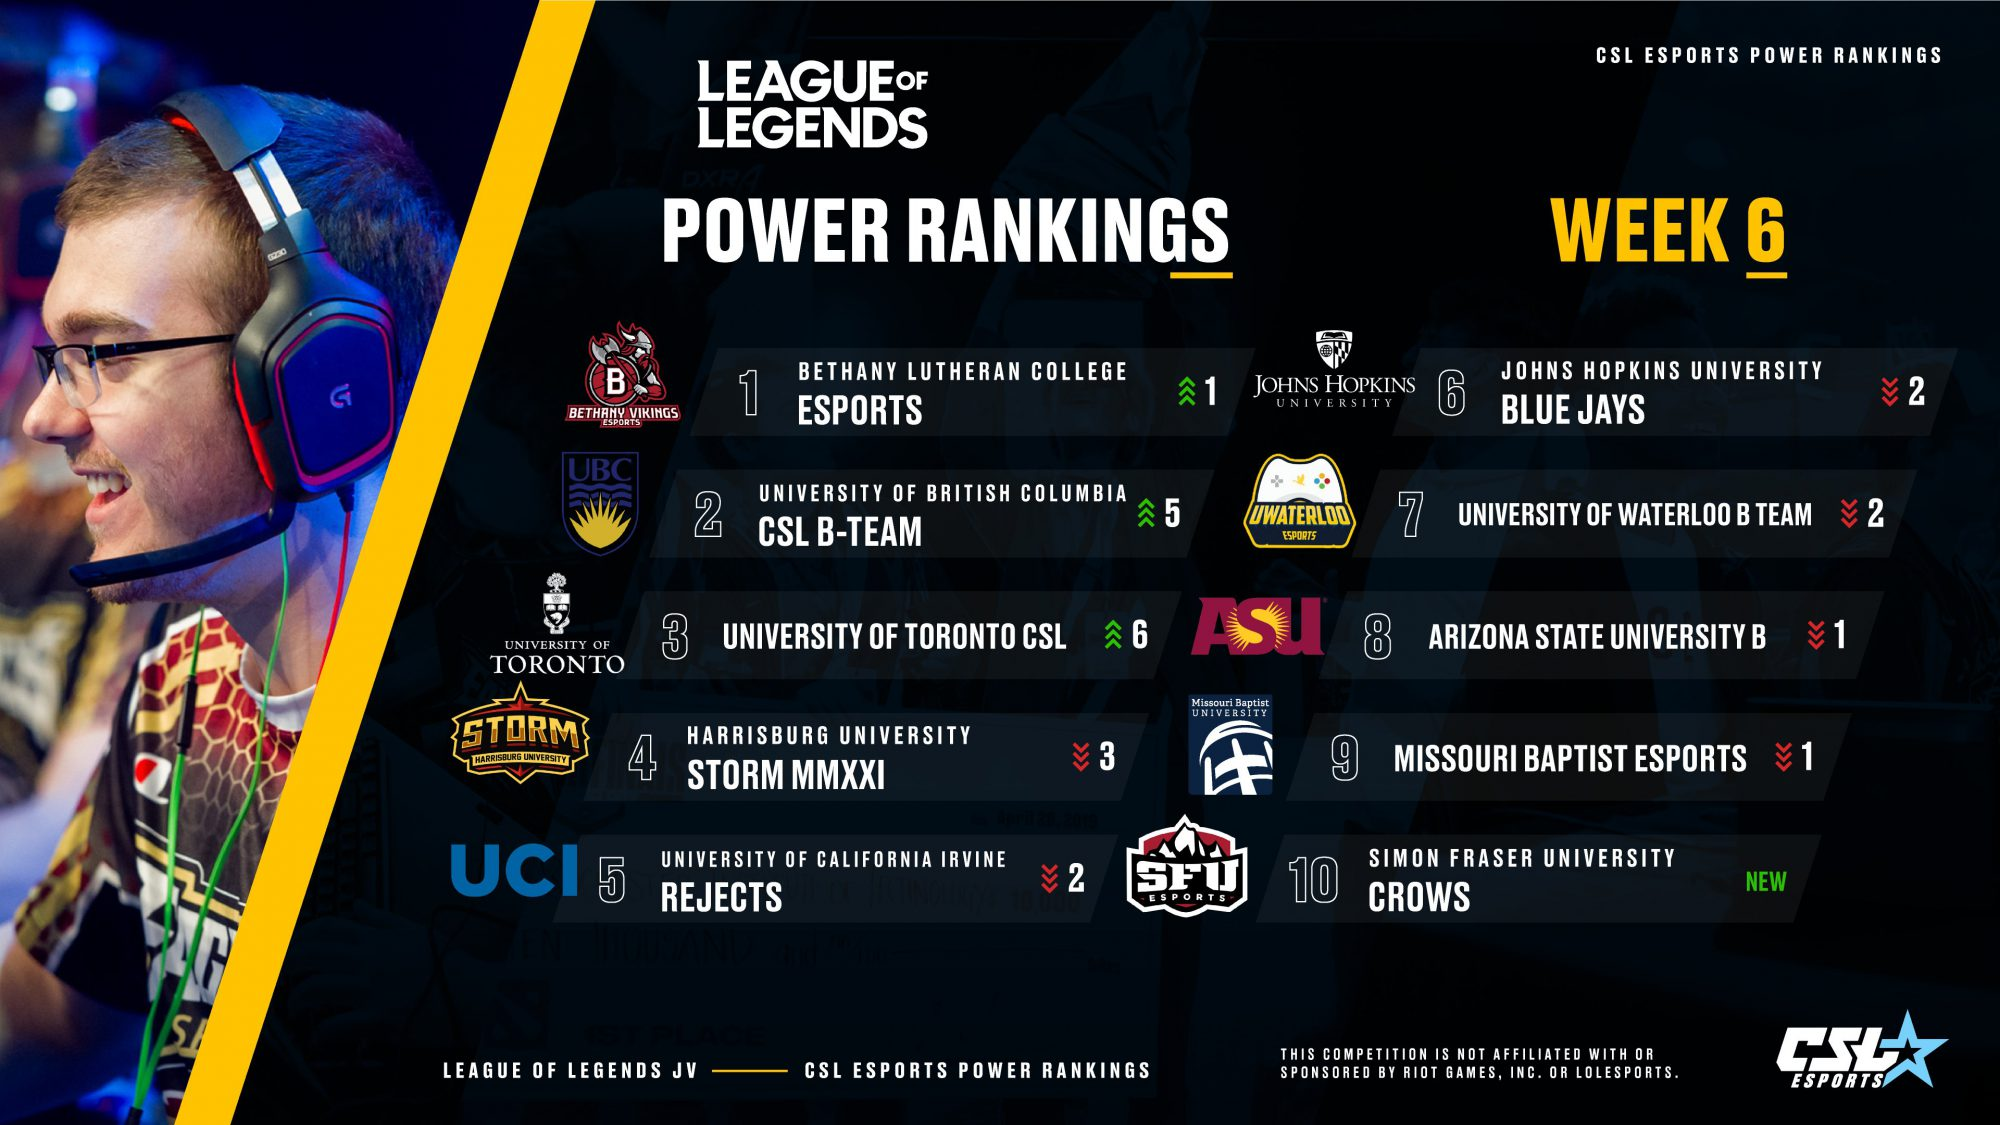 League of legends Power Rankings Week 6 from CSL Esports